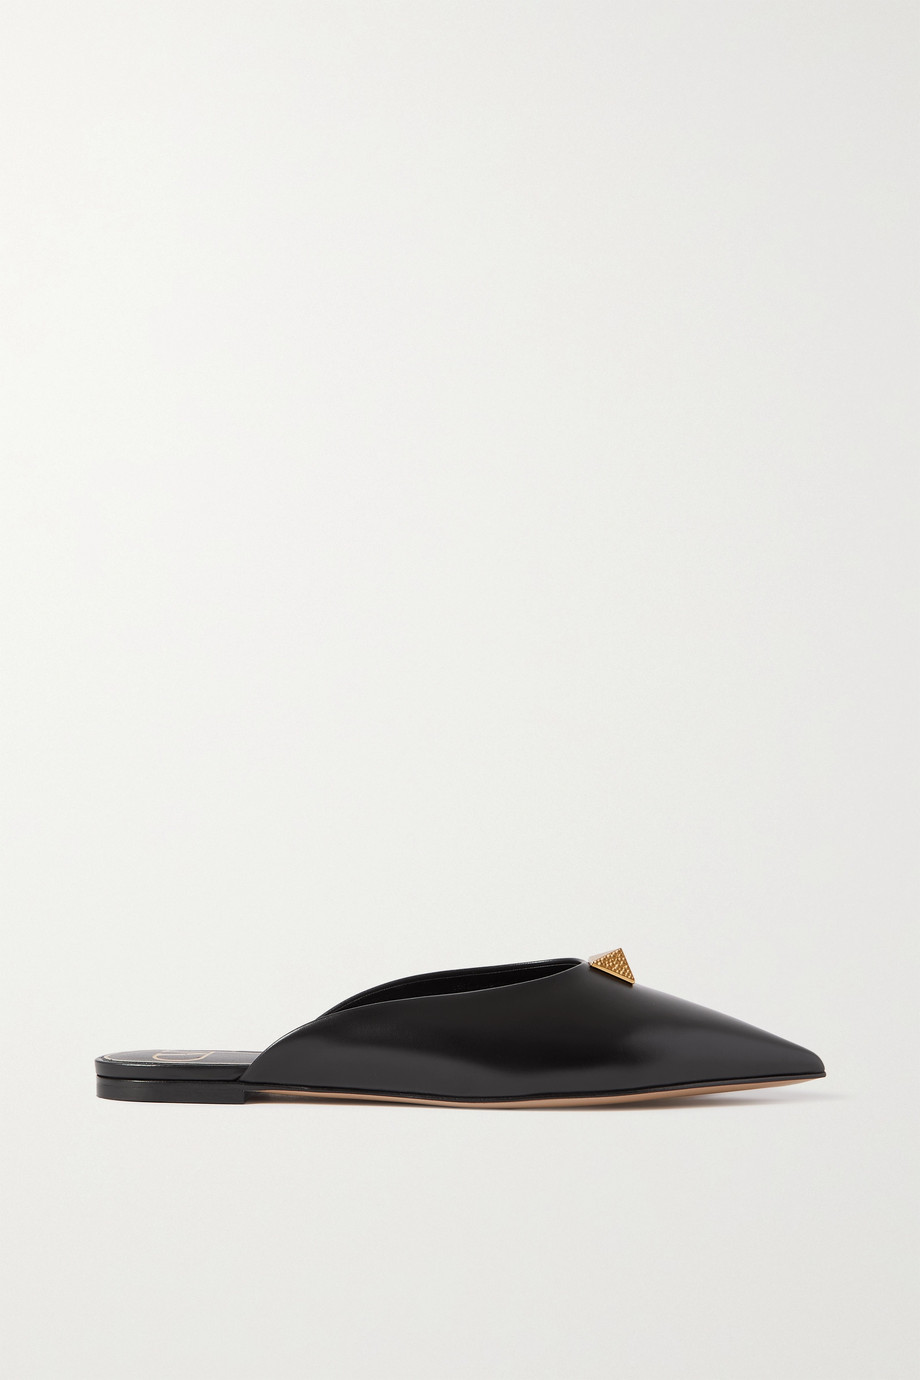 Valentino Valentino Garavani Upstud leather point-toe flats